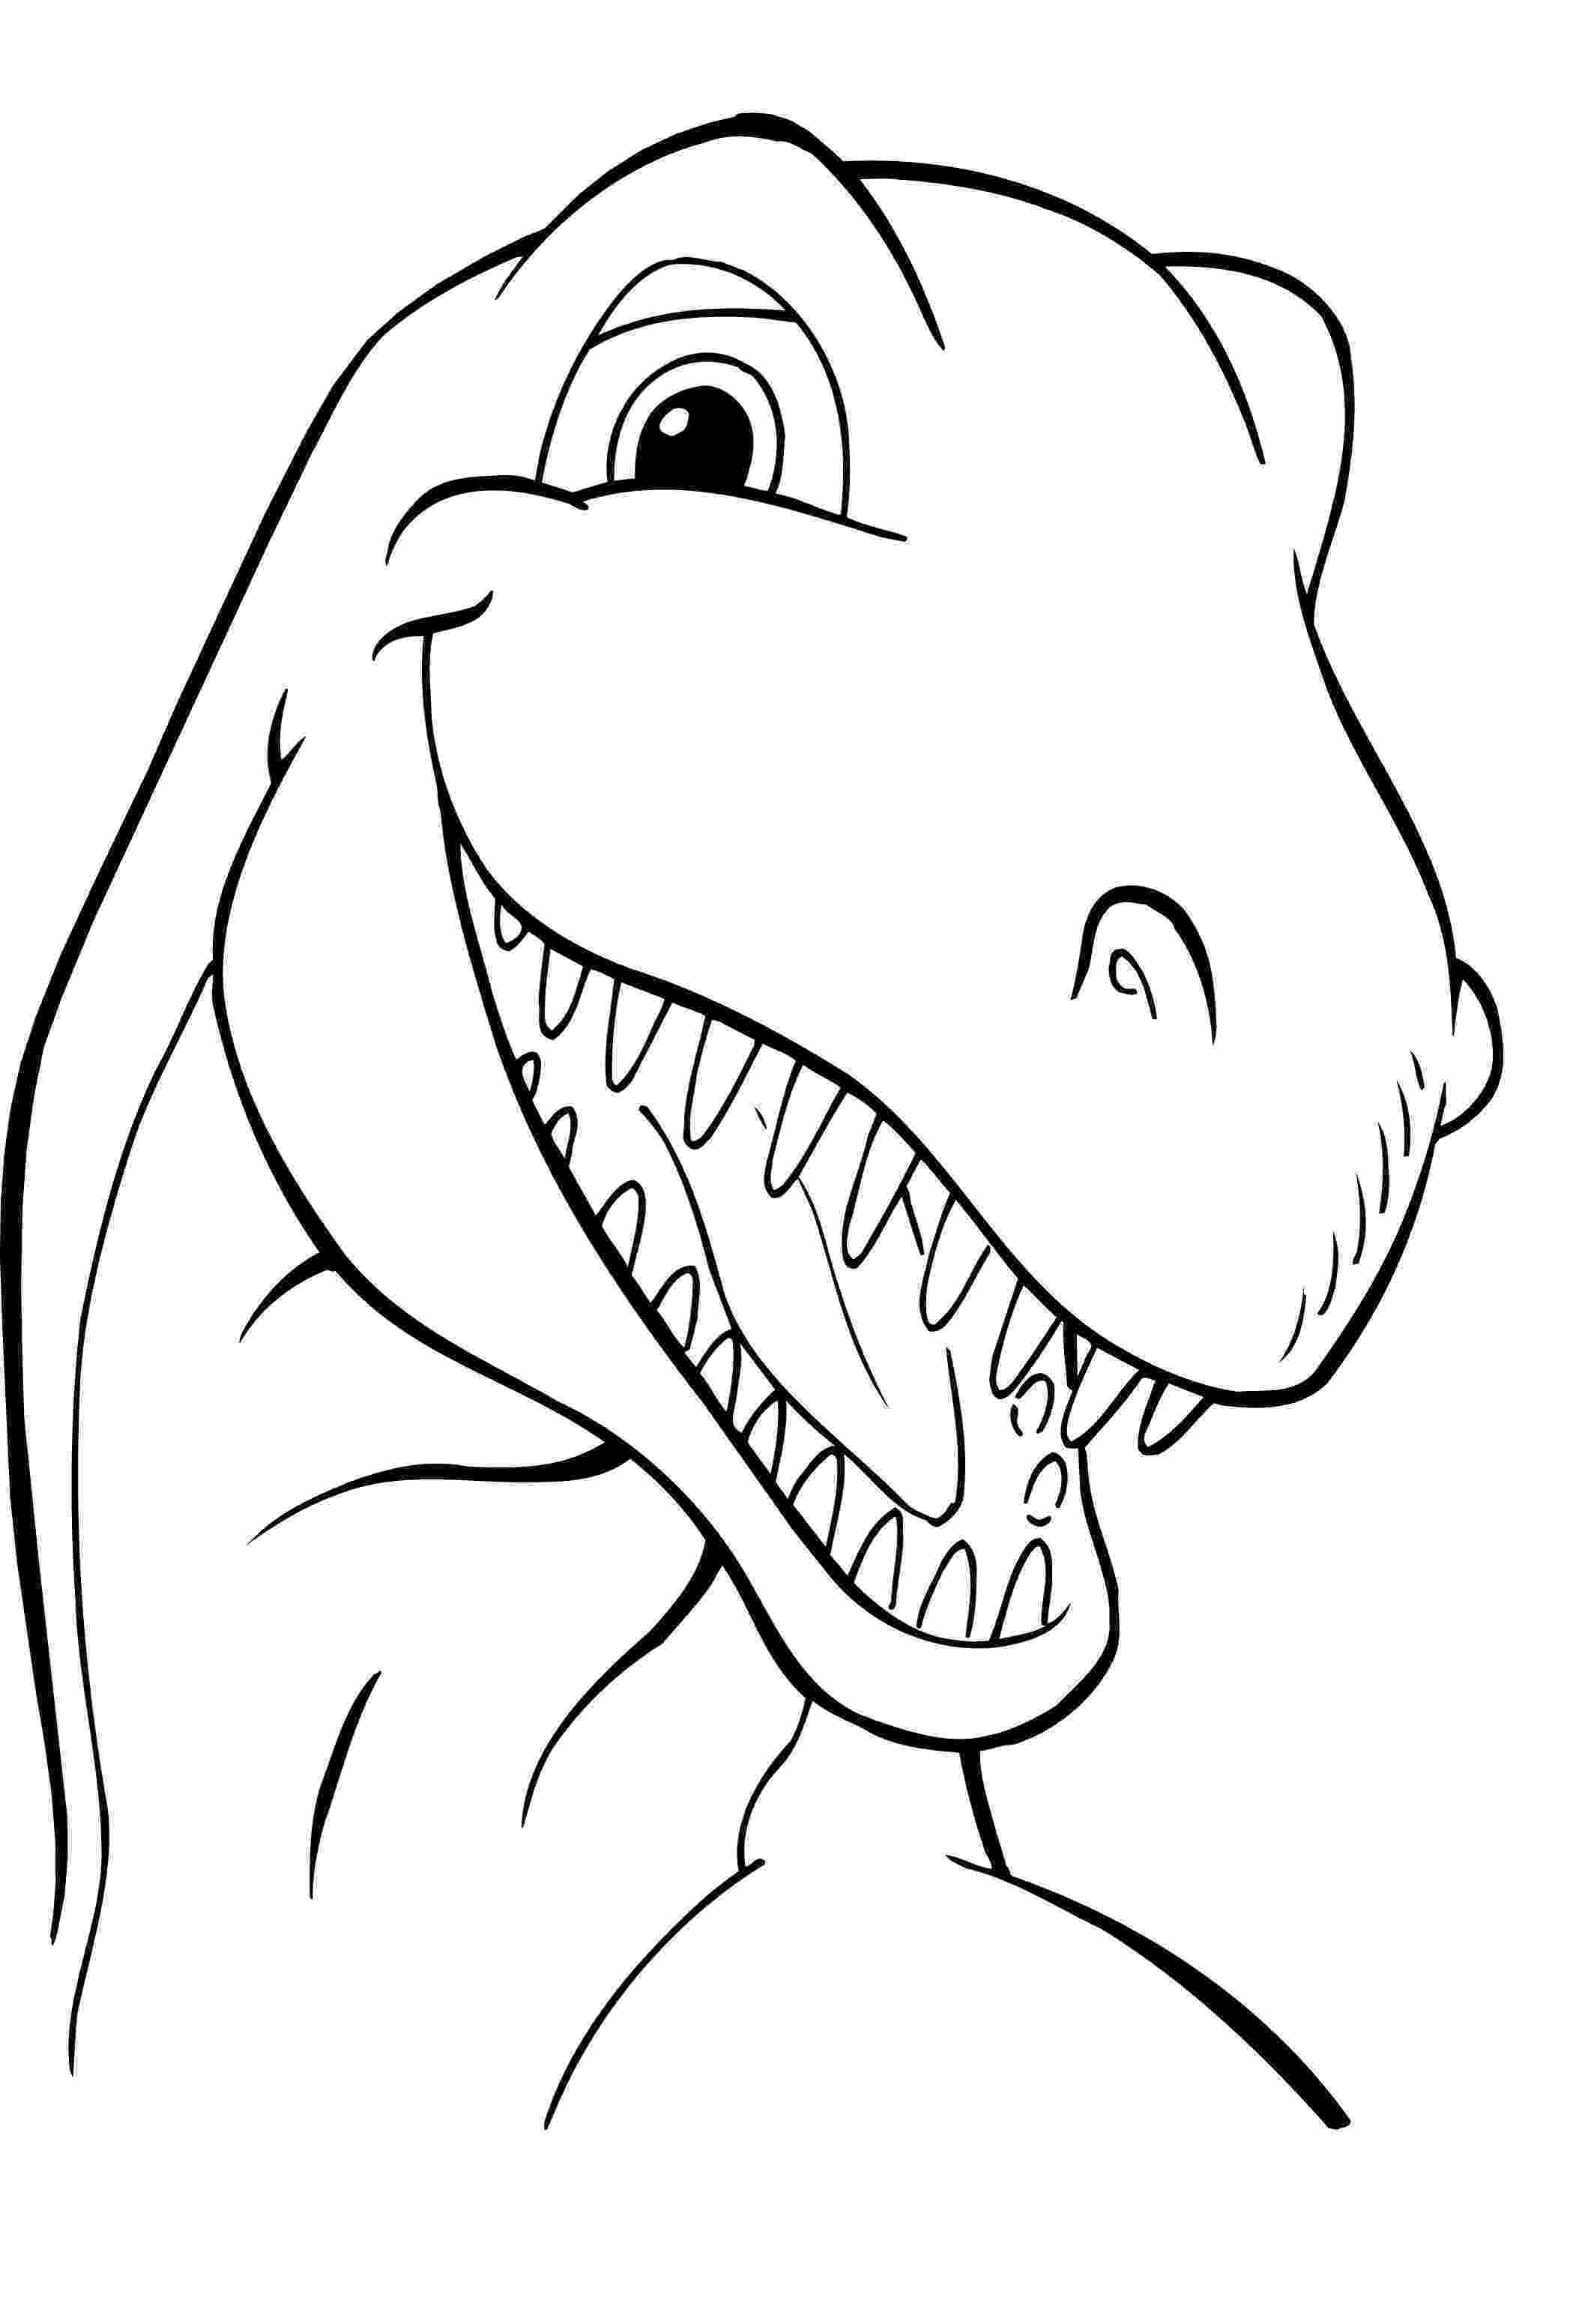 dinosaurs colouring pictures to print dinosaurs coloring pages getcoloringpagescom print dinosaurs colouring pictures to